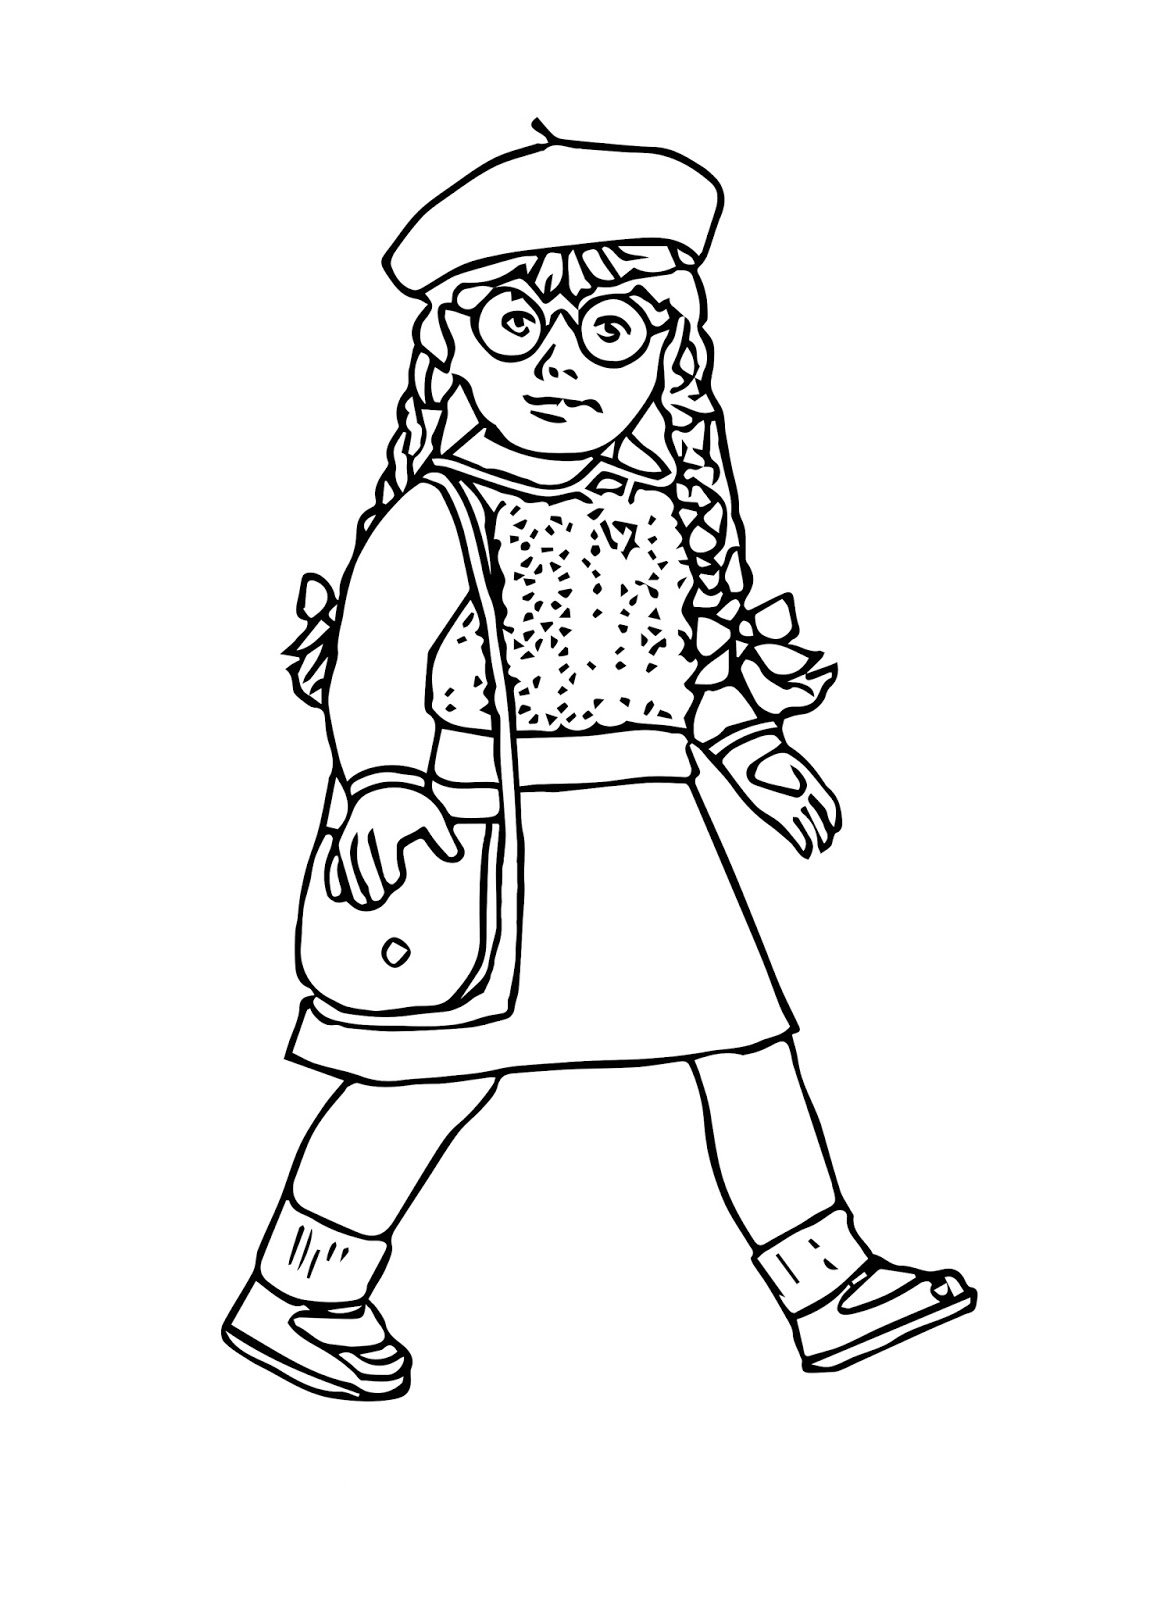 free girl coloring pages to print american girl coloring pages best coloring pages for kids pages print girl to coloring free